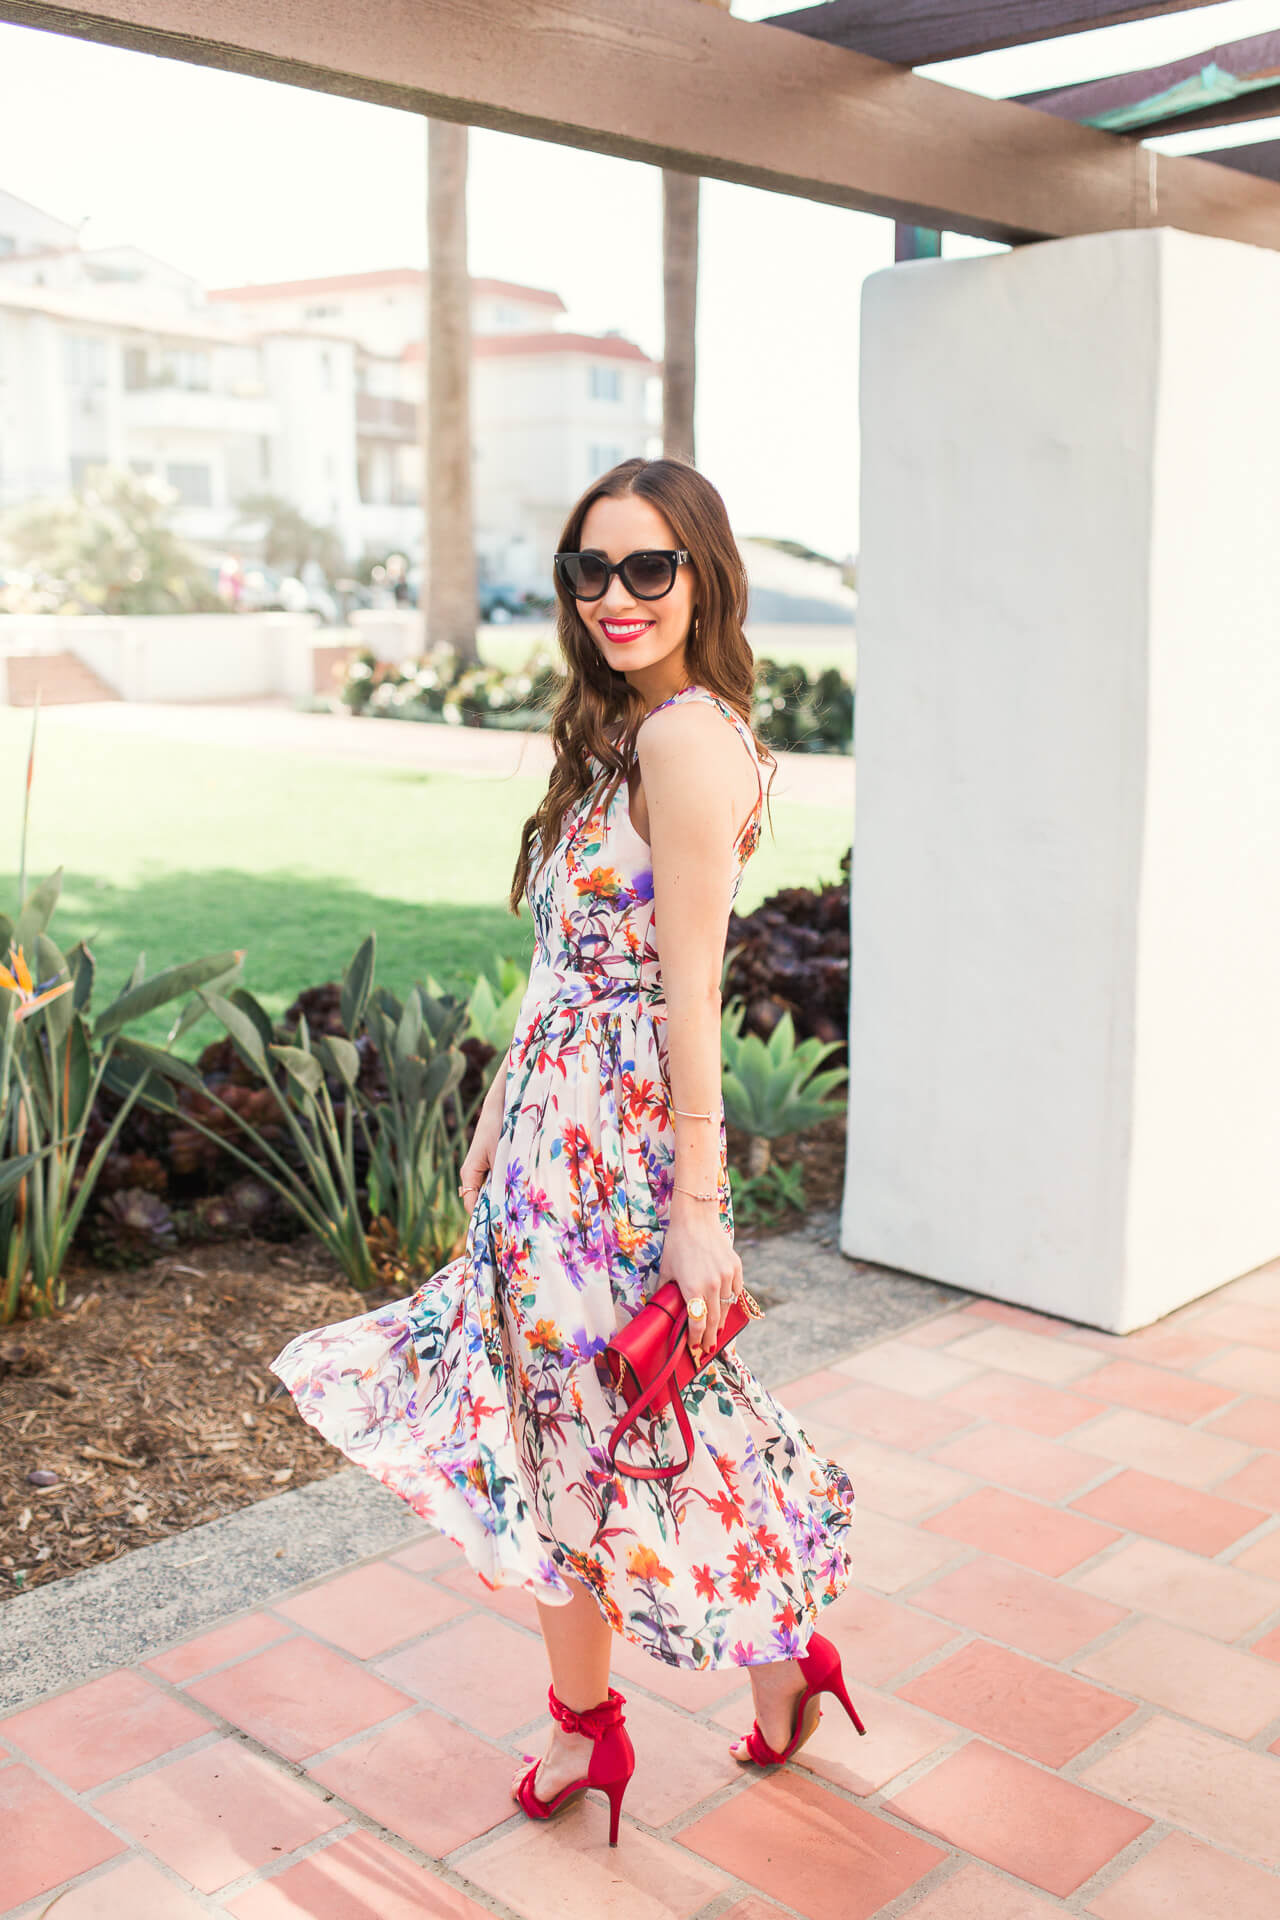 gotta love a dress spin! Love this flowy dress for spring and summer